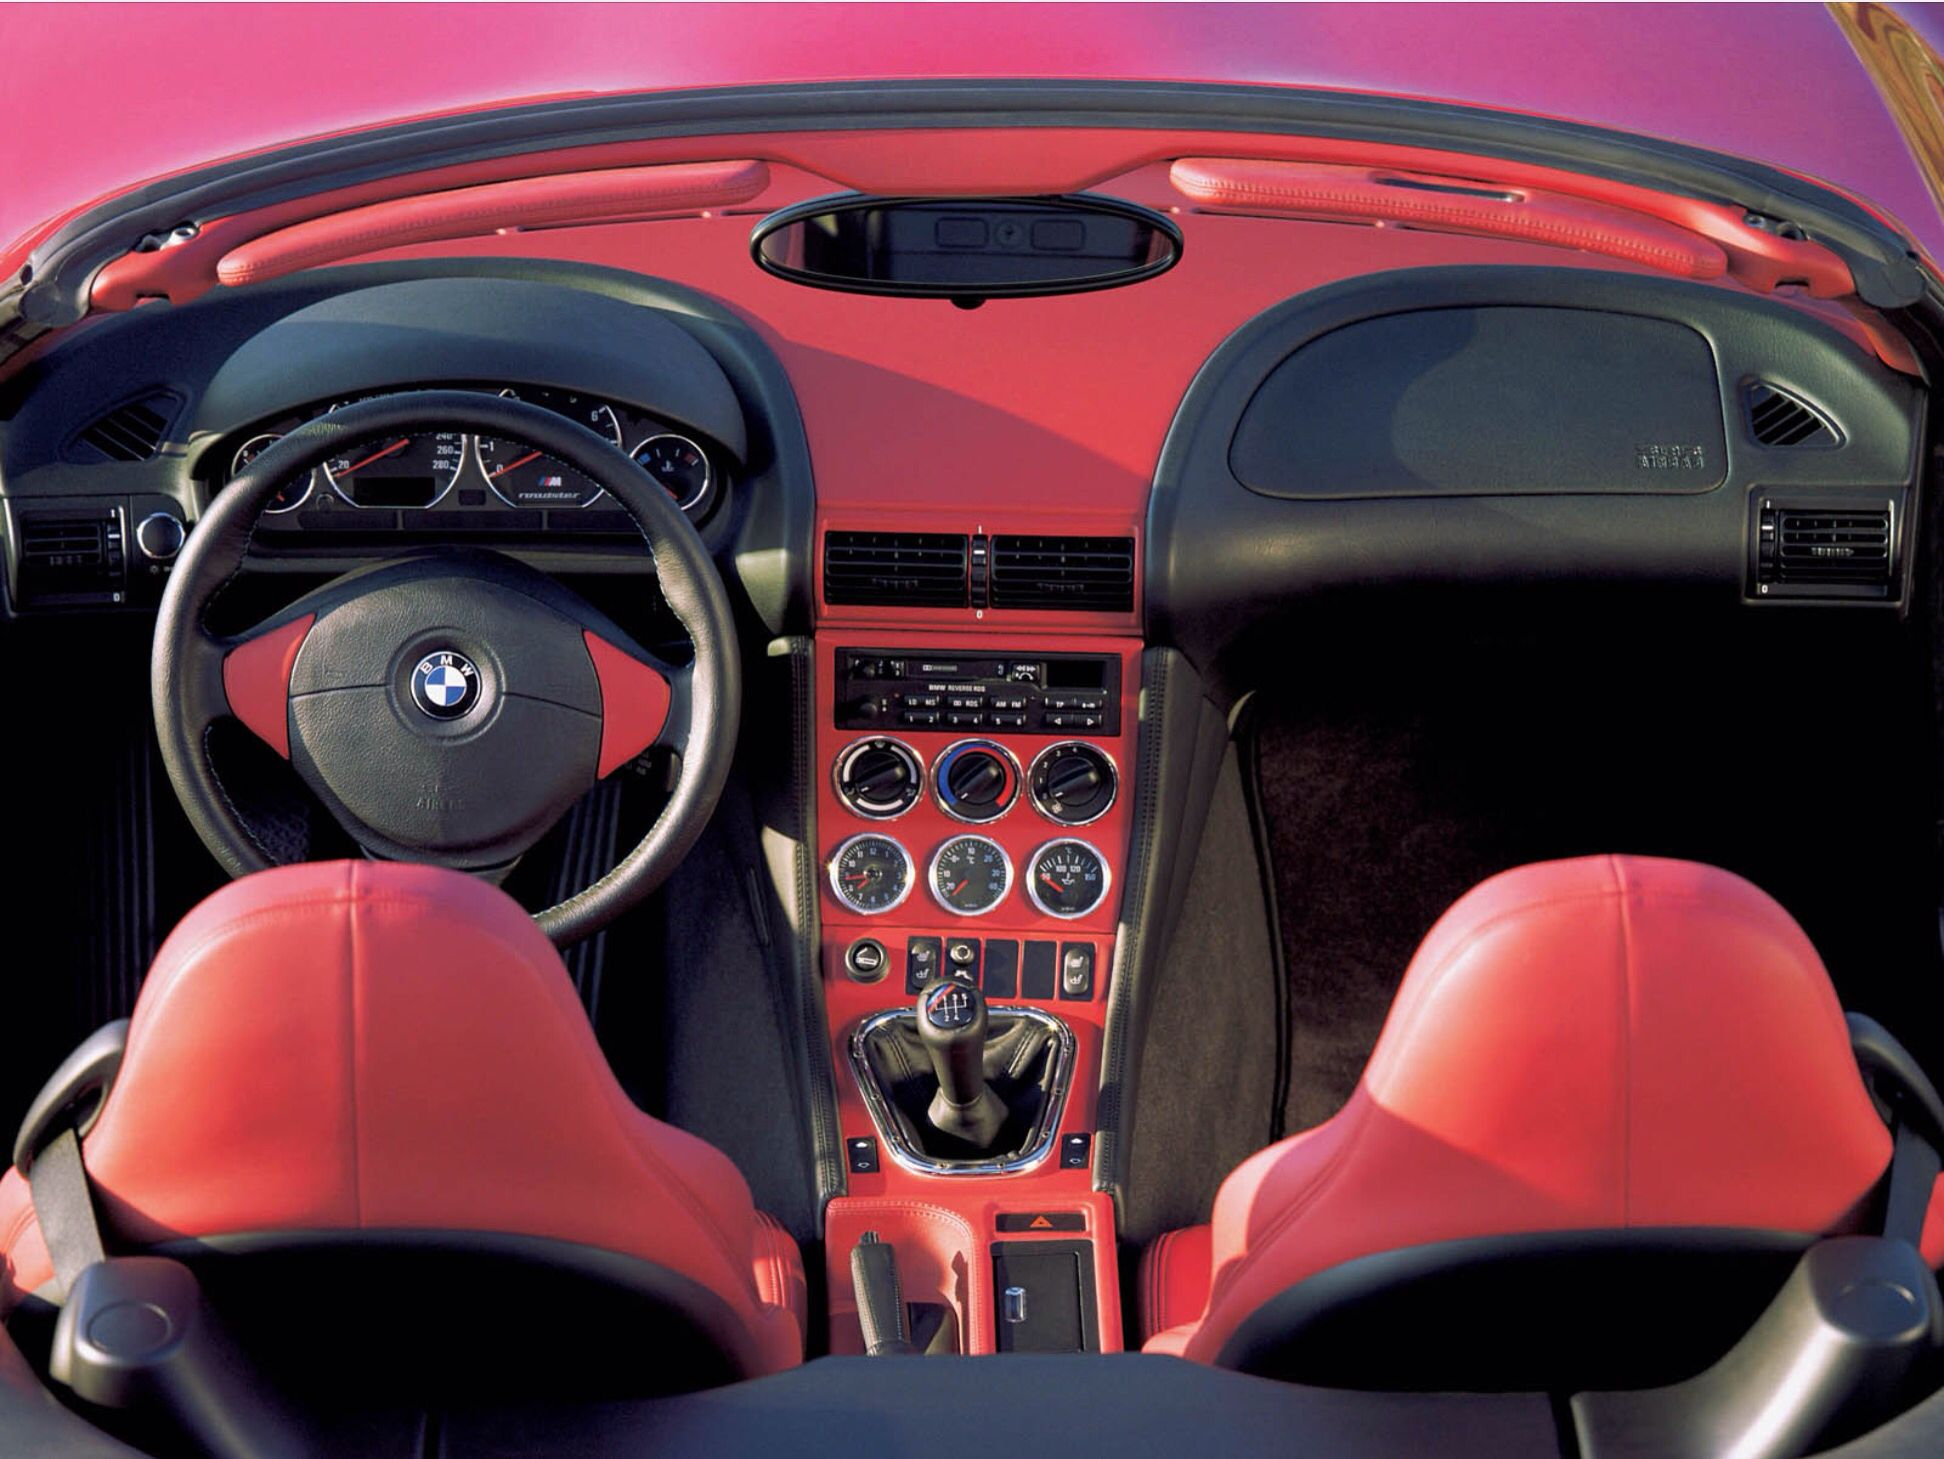 medium resolution of bmw z3 m roadster mine has this fabulous interior colour scheme but is right hand drive